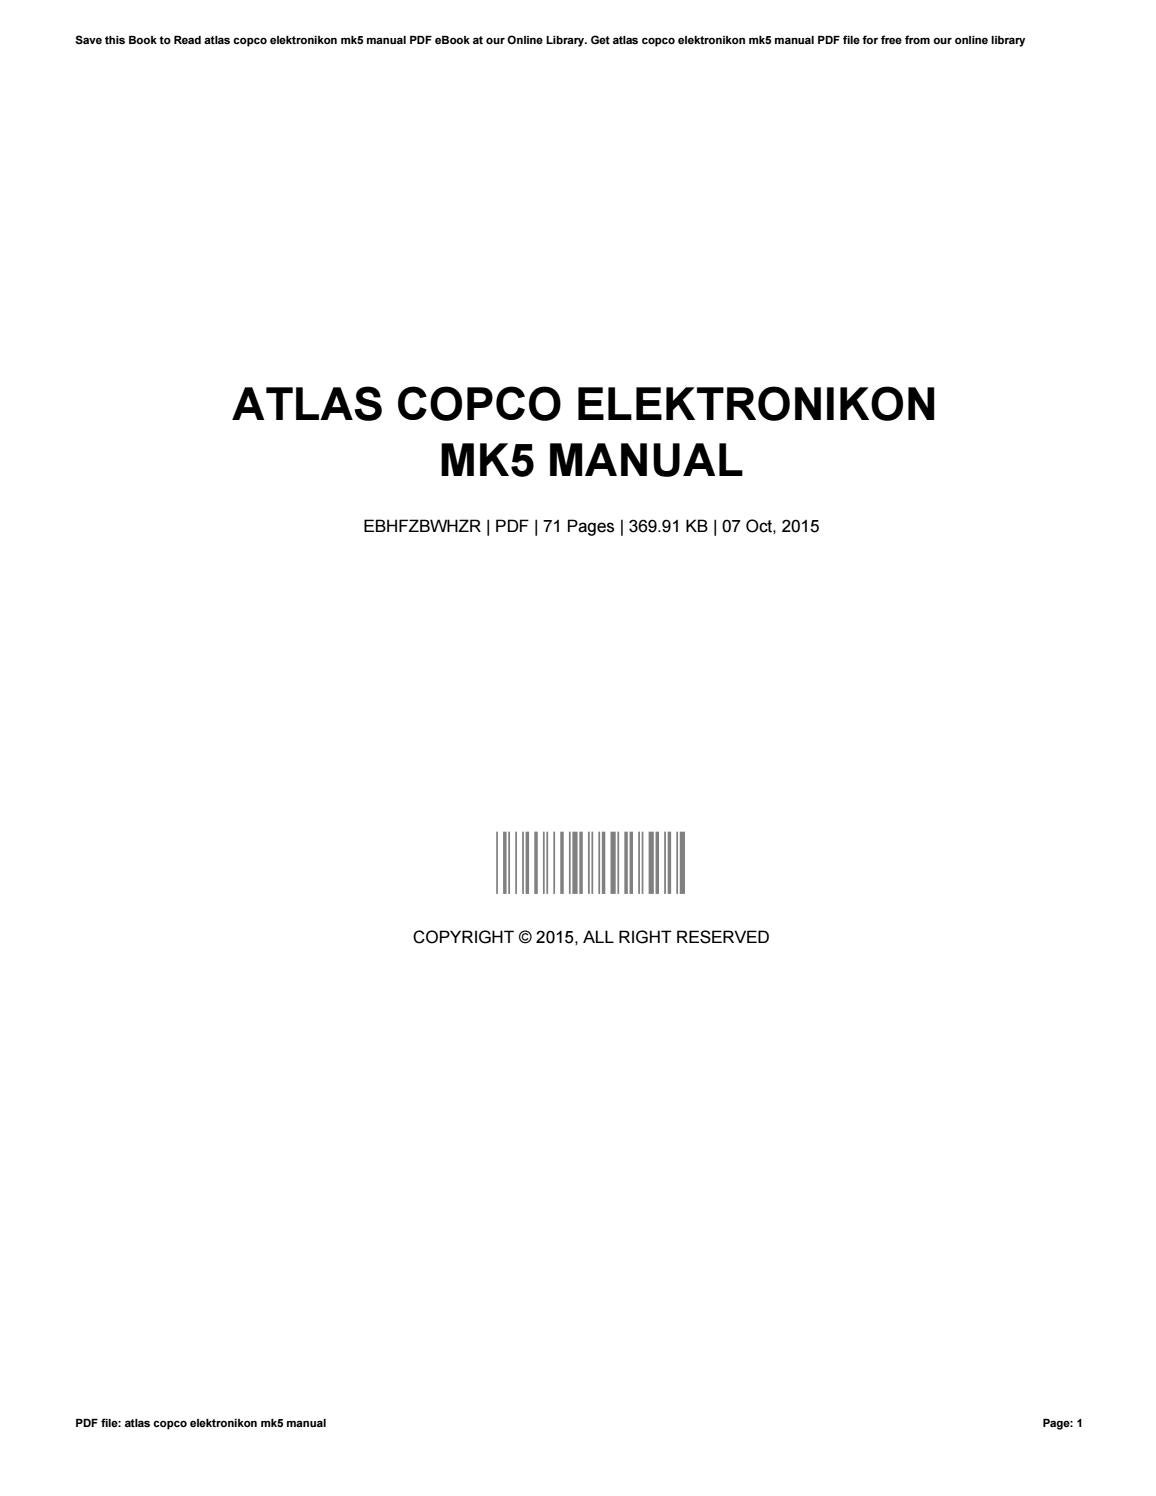 Atlas Copco Elektronikon Mk5 Manual By Patriciamiller2583